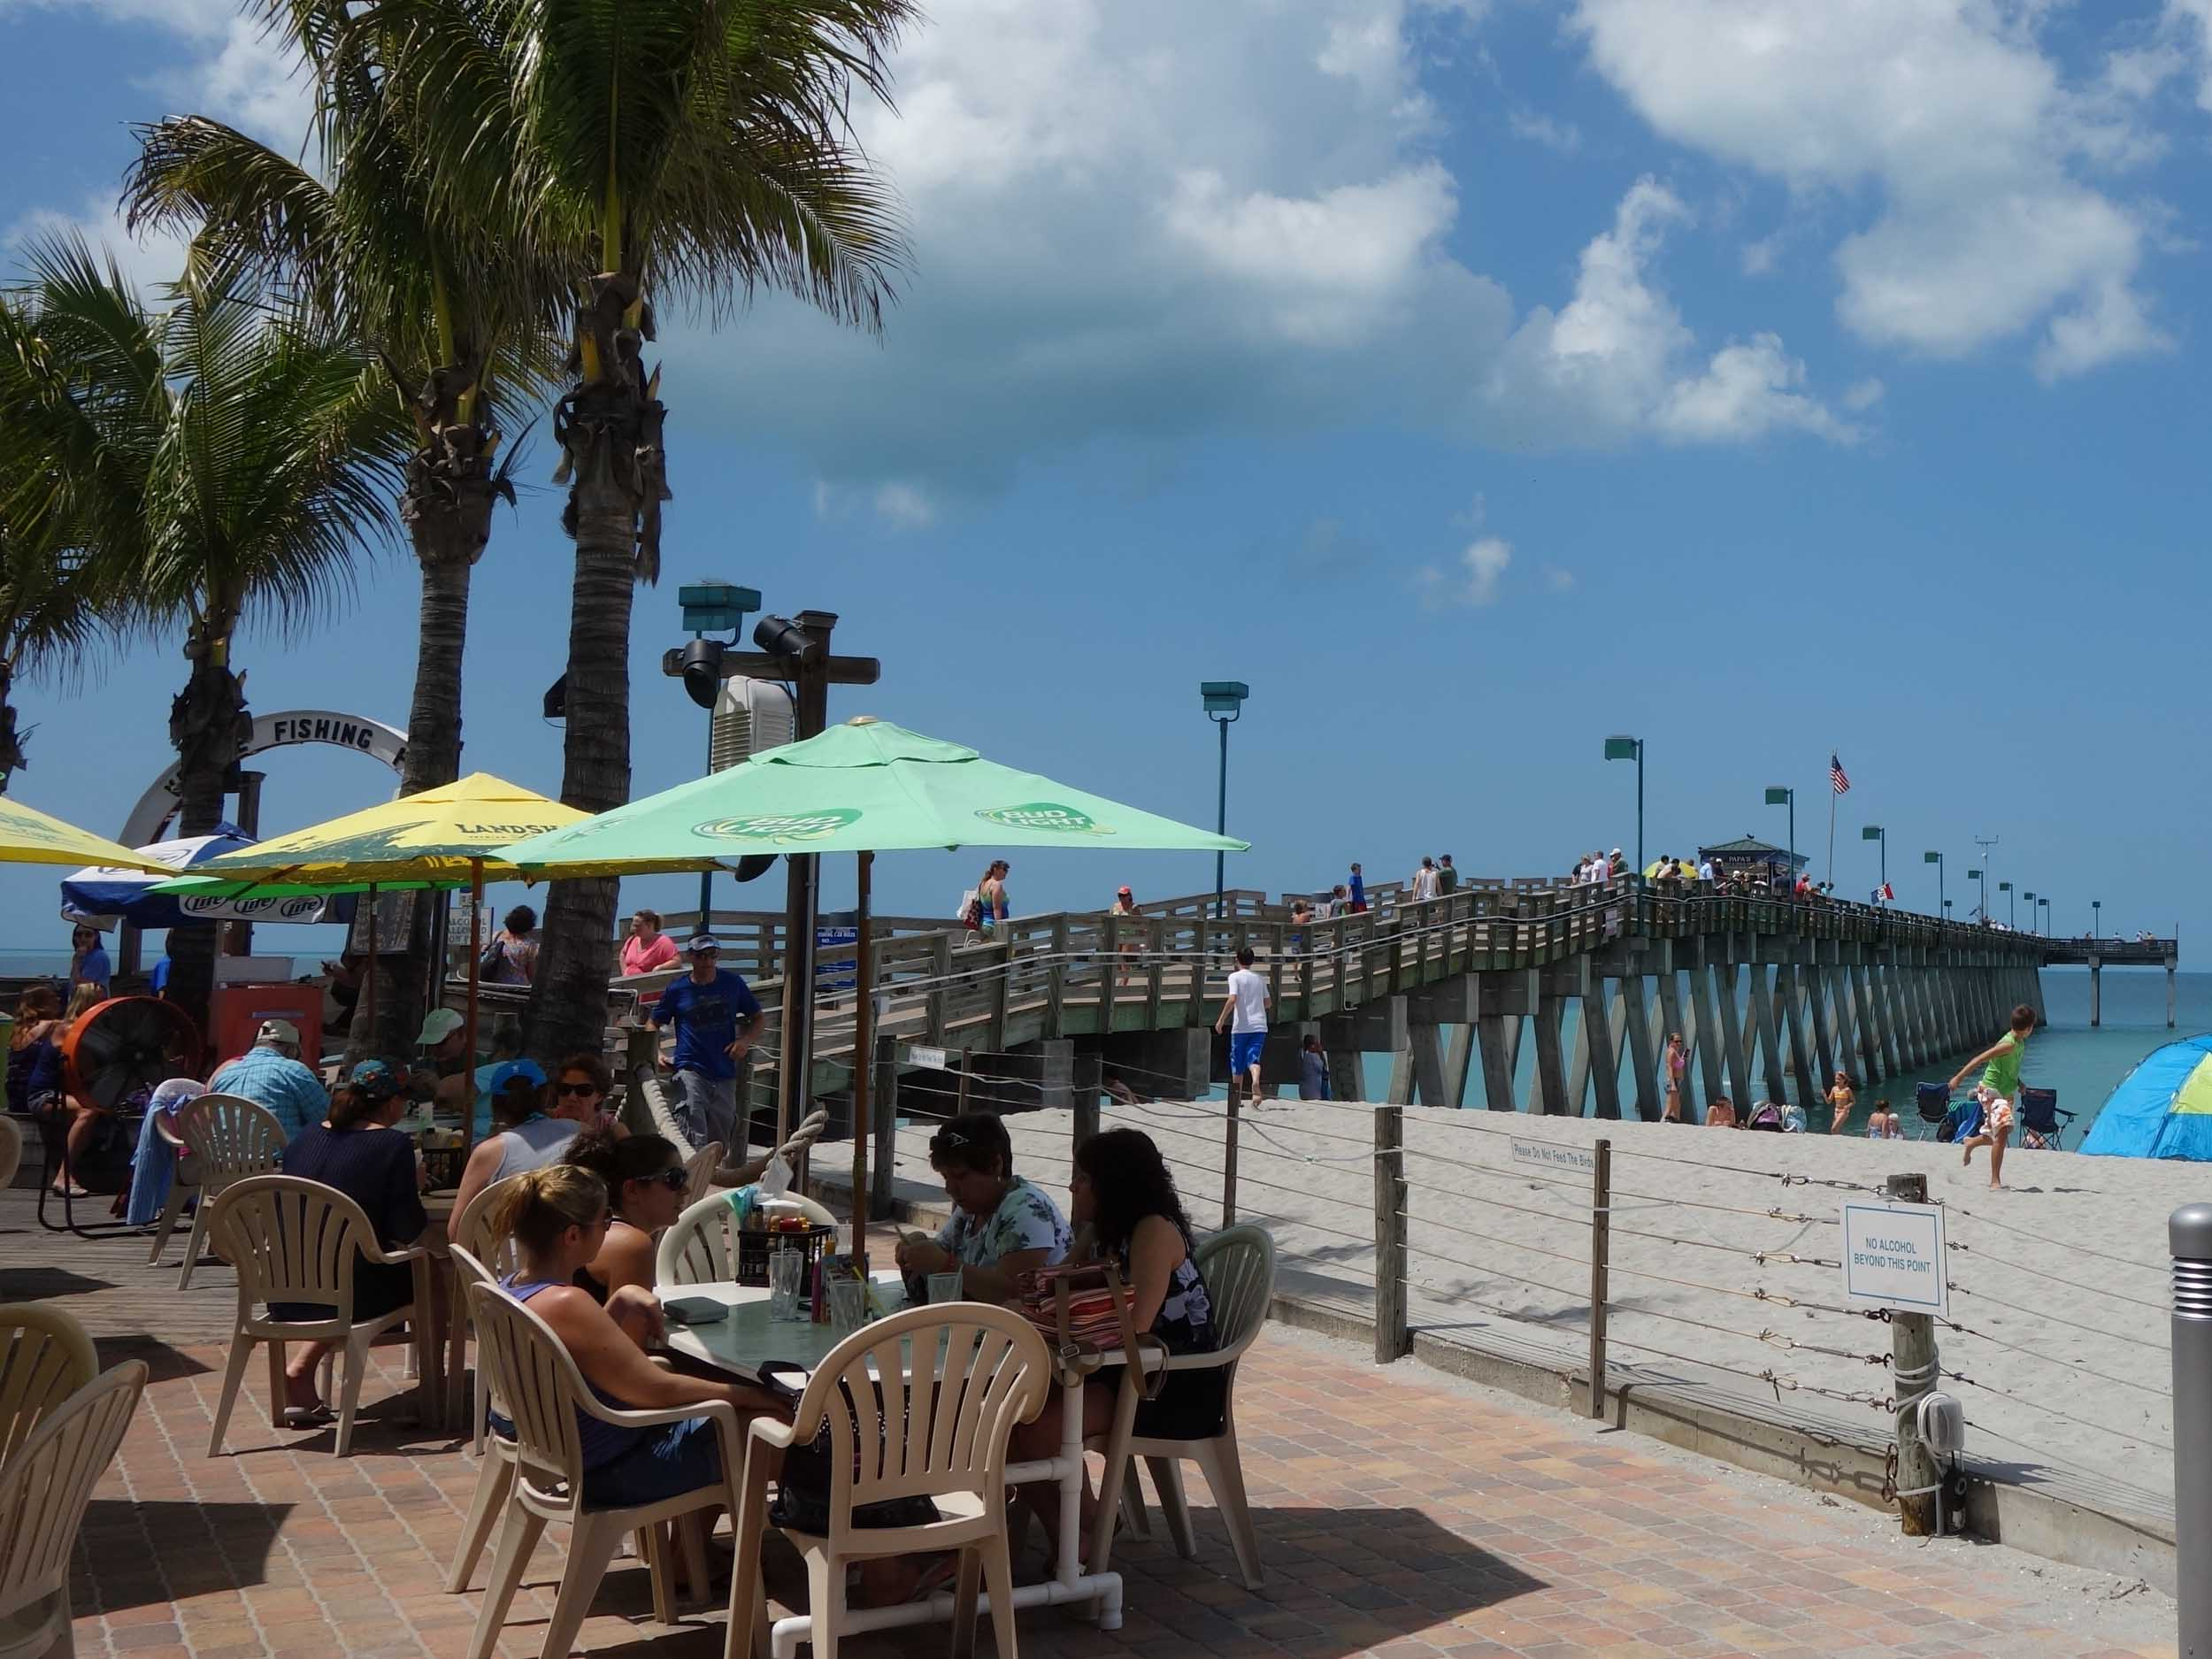 Sharky's on the Pier View